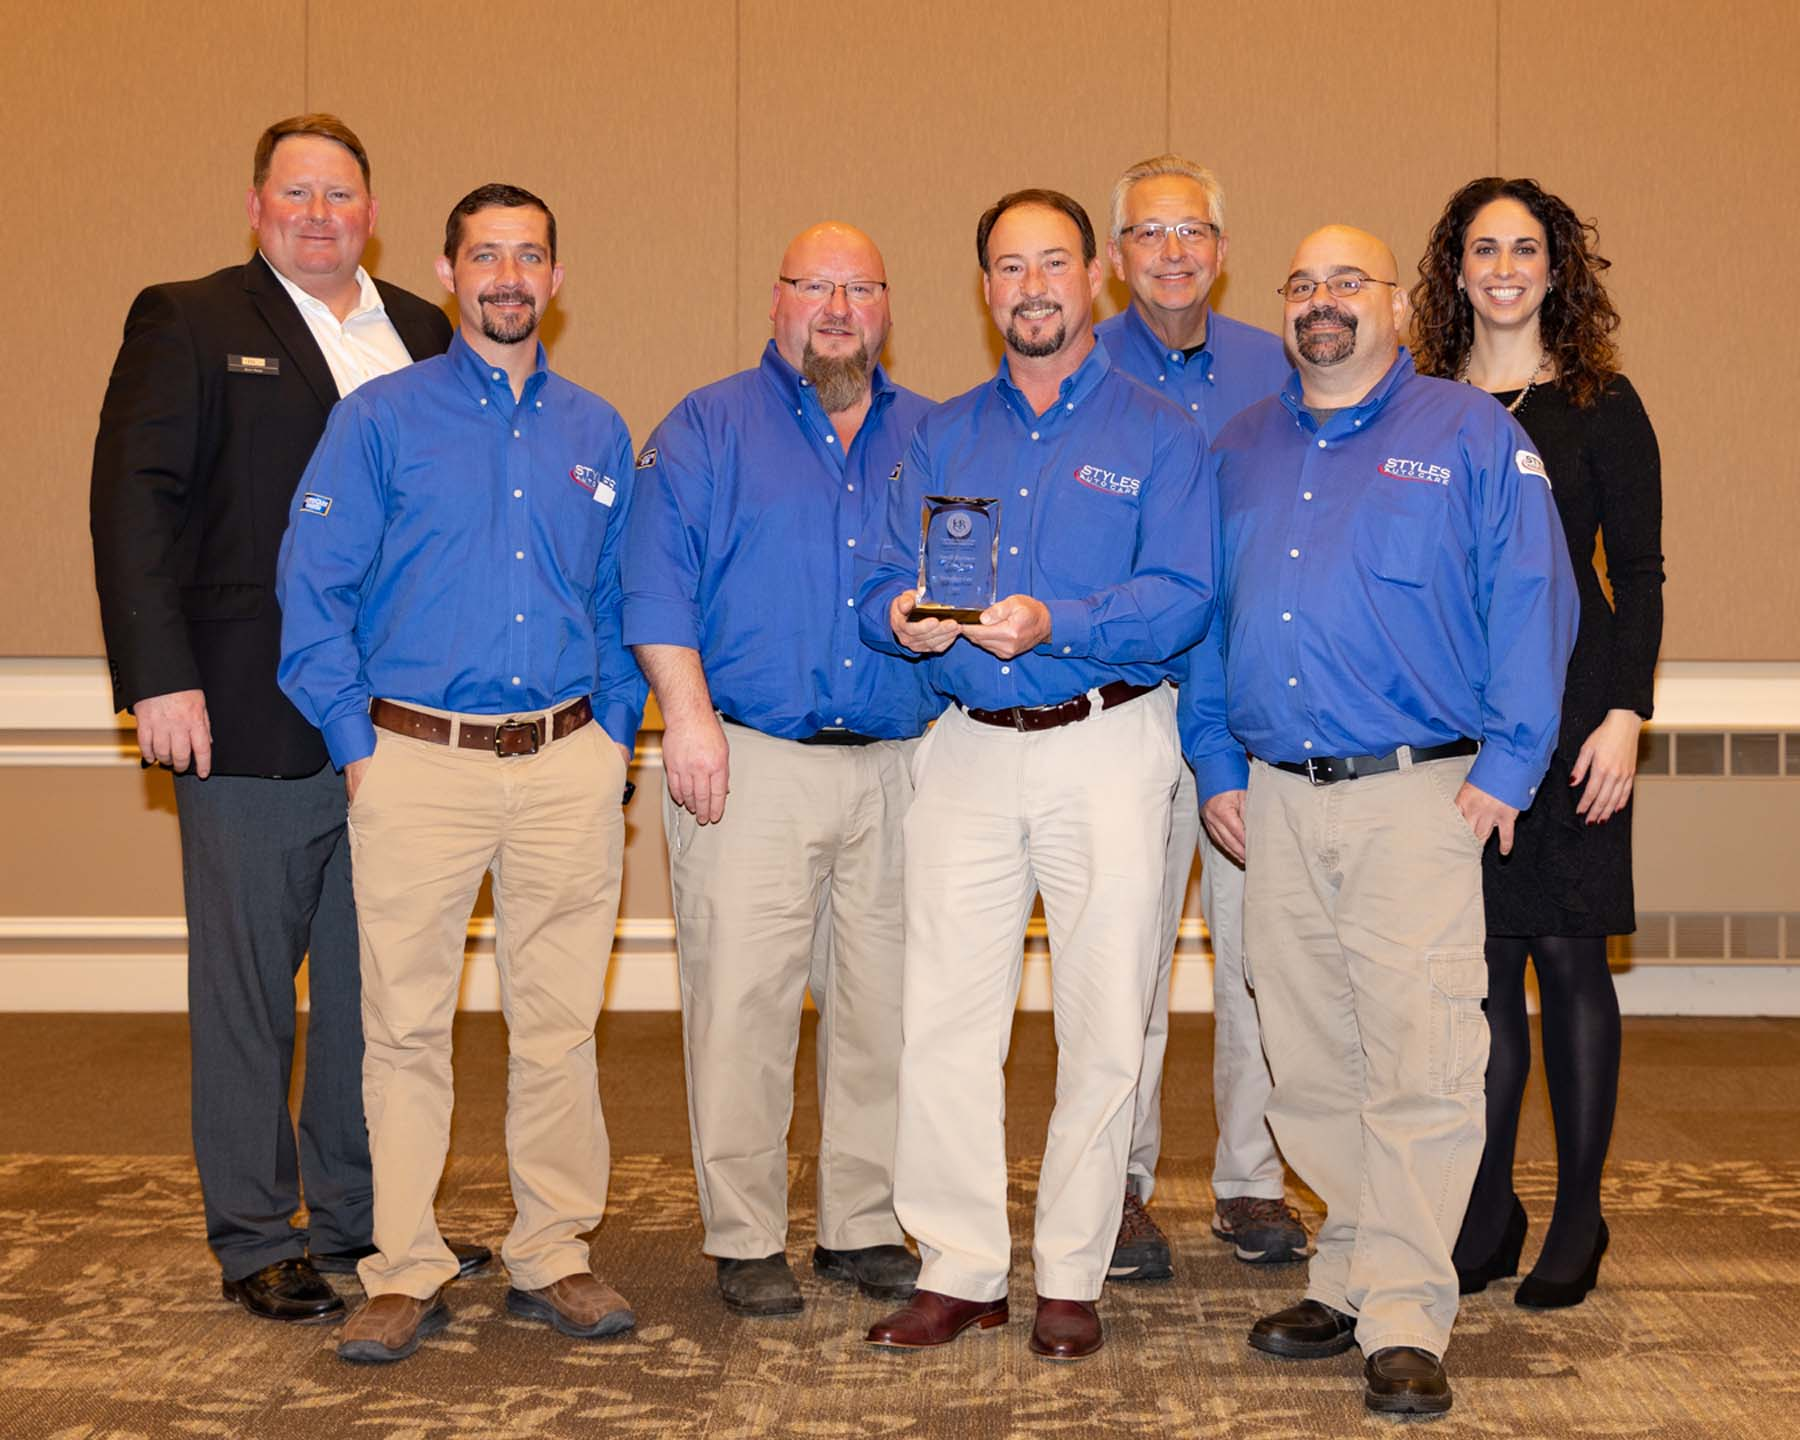 Styles Auto Care, 2019 Small Business of the Year